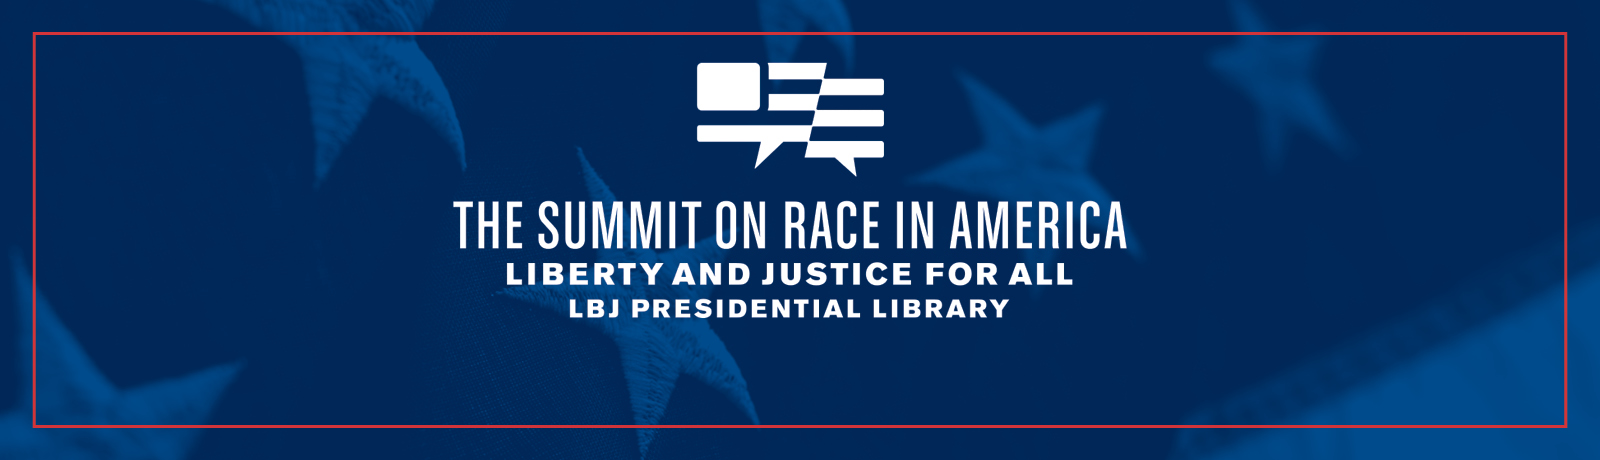 Save the Date: Summit on Race in America is Happening April 8-10